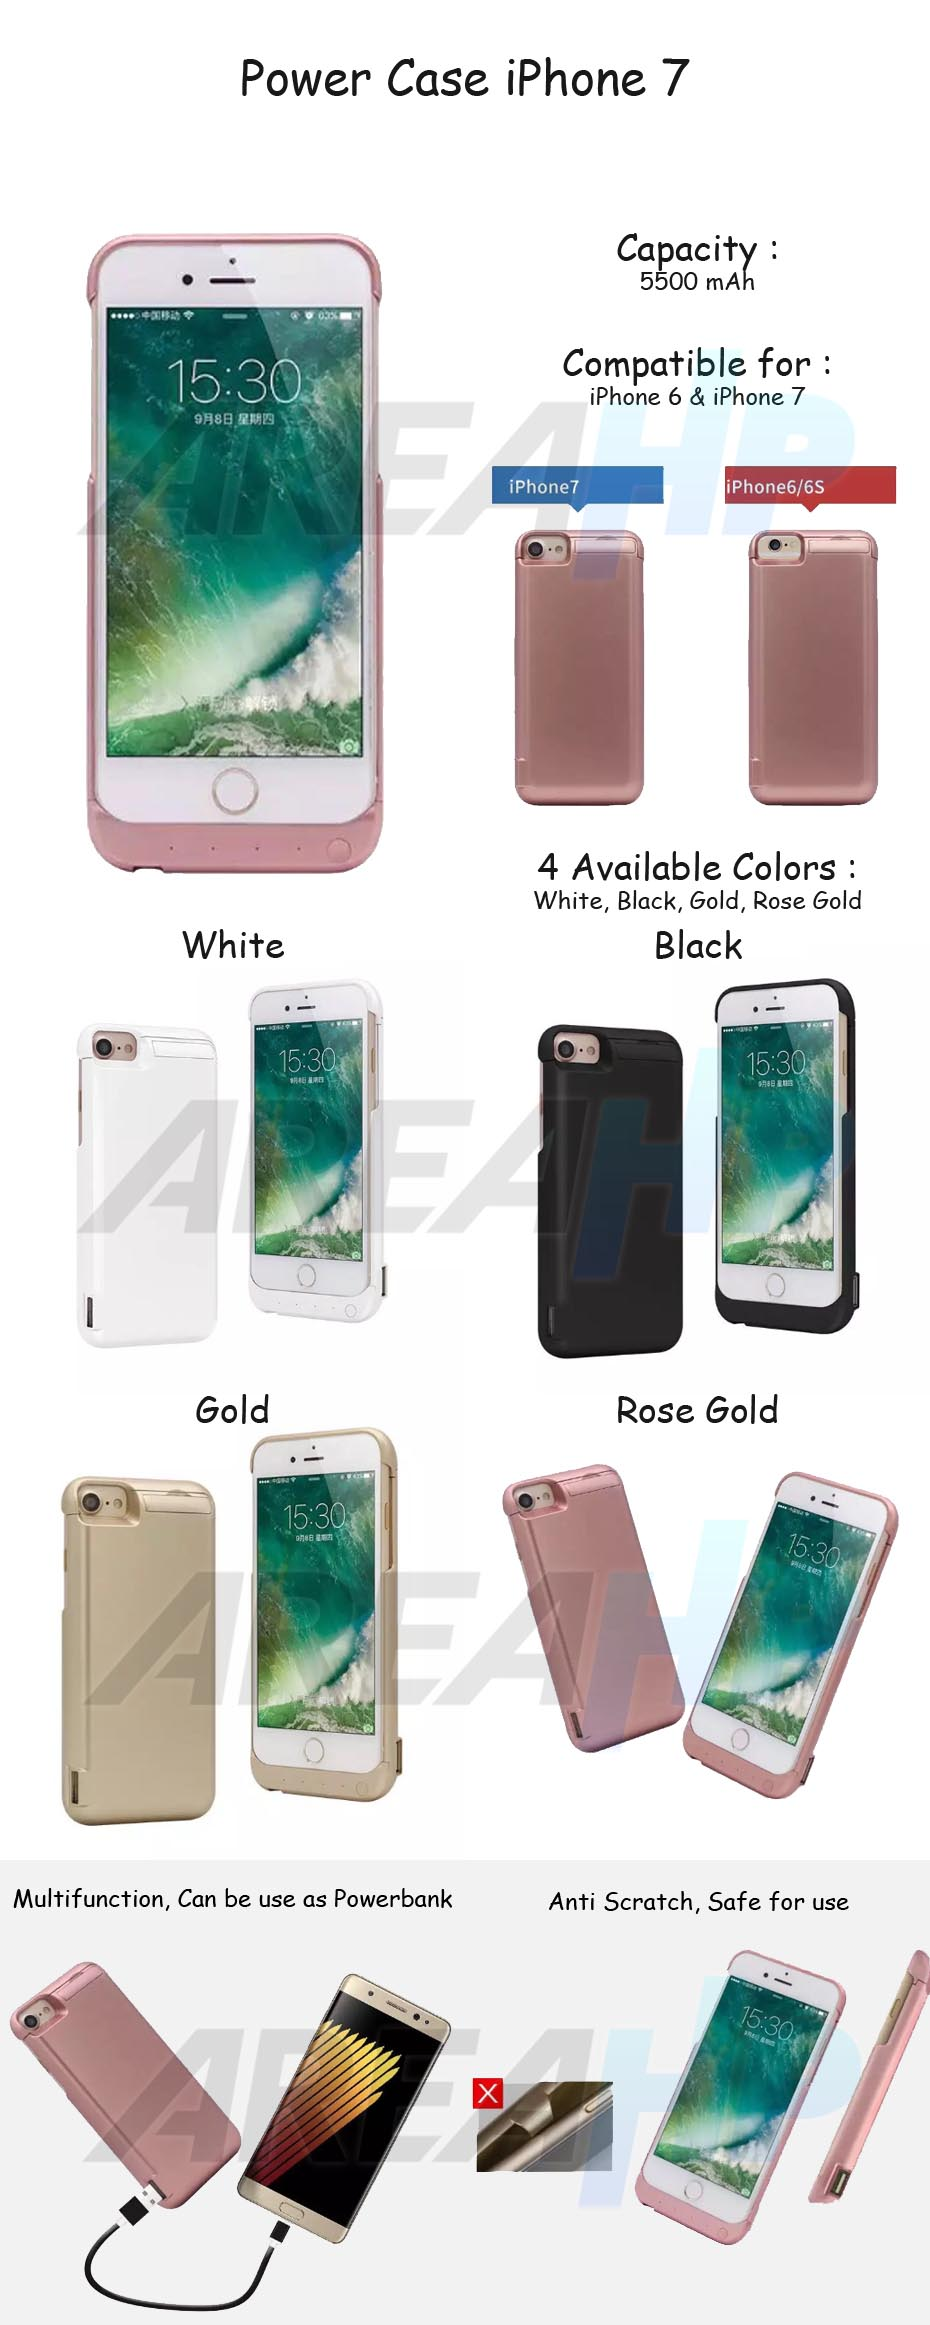 Power Case 5500mAh For iPhone 7 Overview